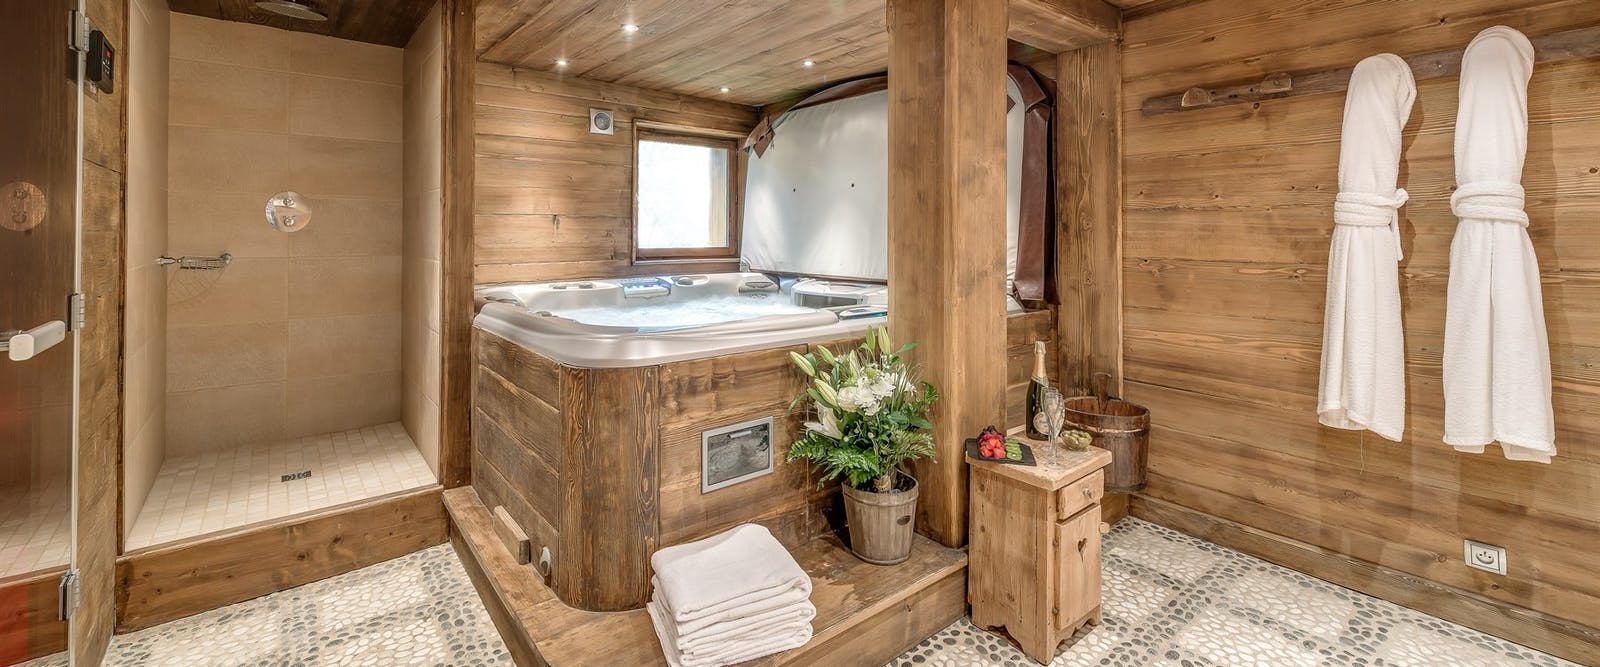 Hot tub at Chalet Chopine